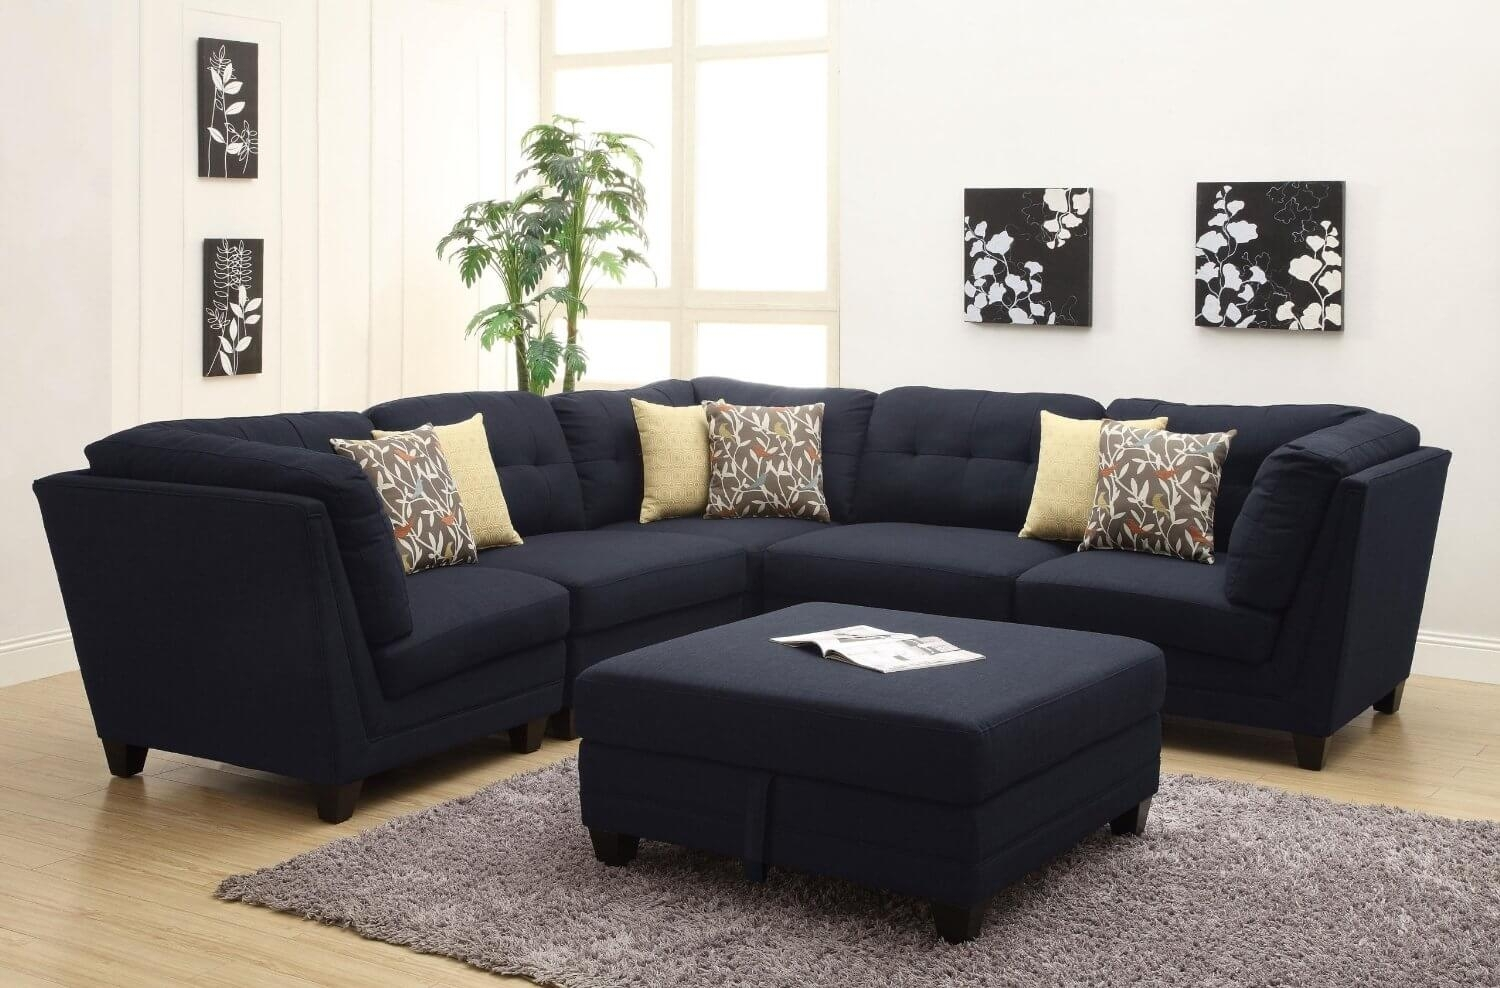 100 Awesome Sectional Sofas Under $1,000 (2018) Pertaining To Sectional Sofas Under 1000 (Photo 12 of 15)